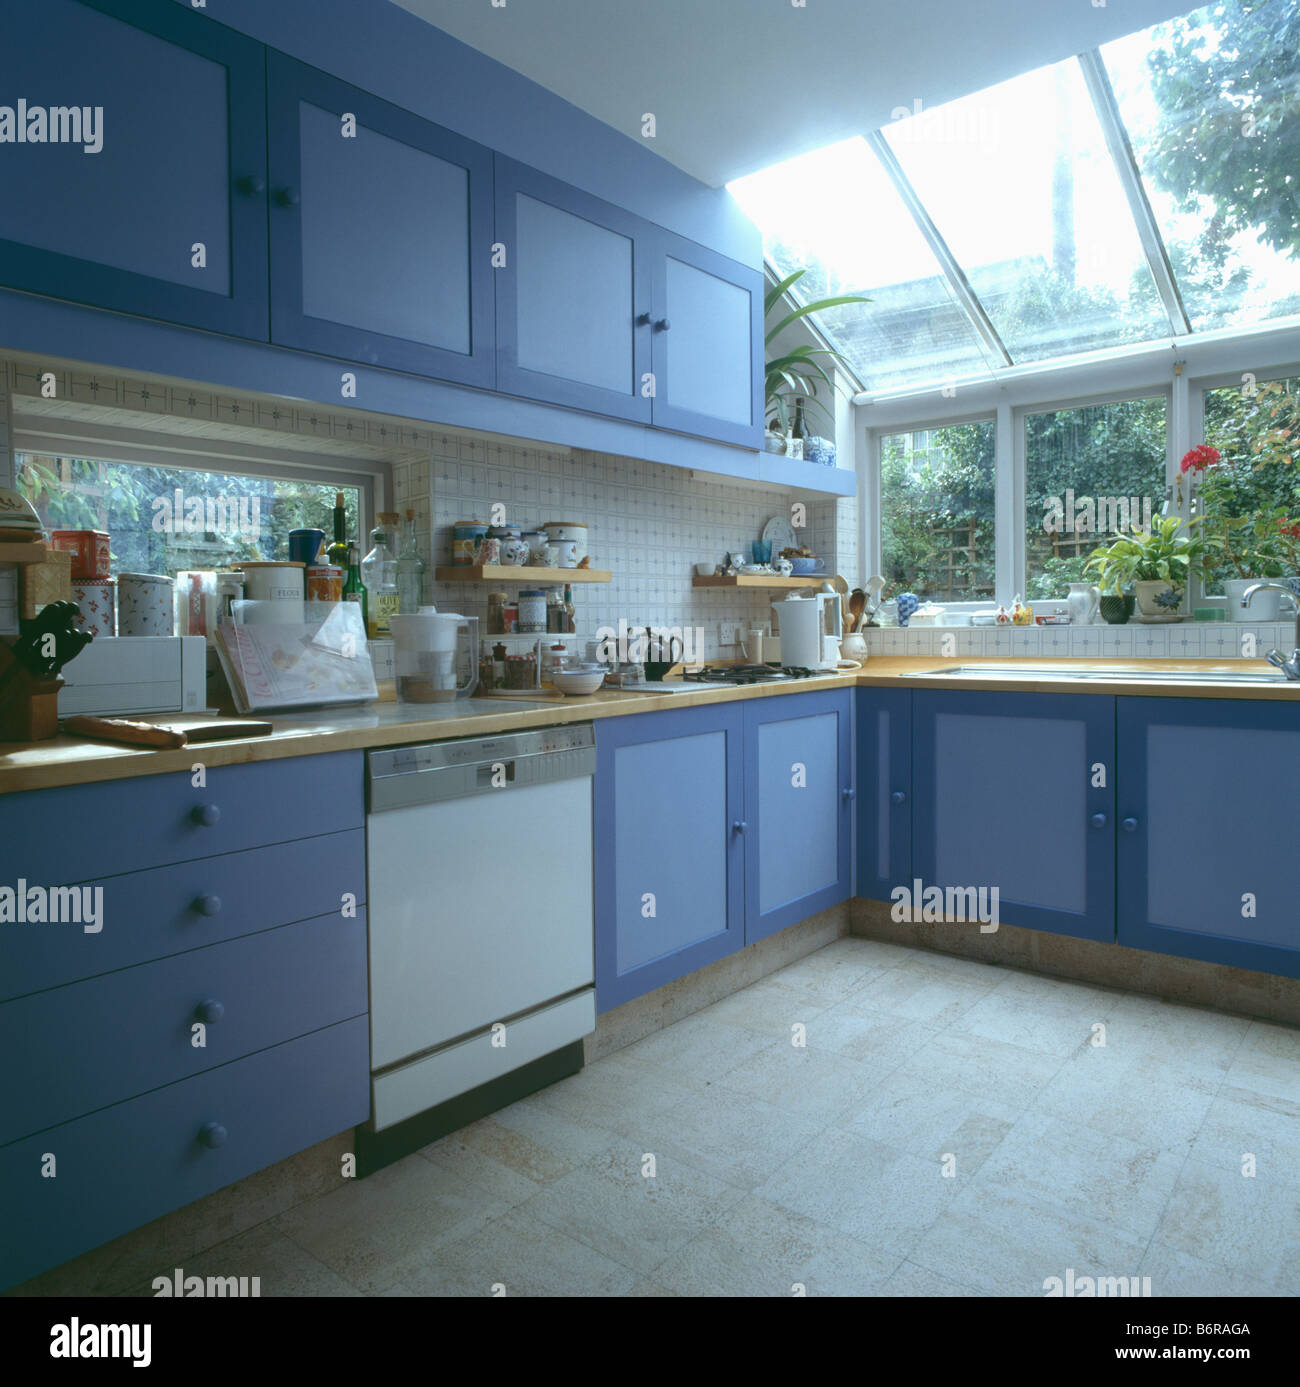 Blue Fitted Cupboards In Kitchen Extension With Glass Skylight And Stock Photo, Royalty Free